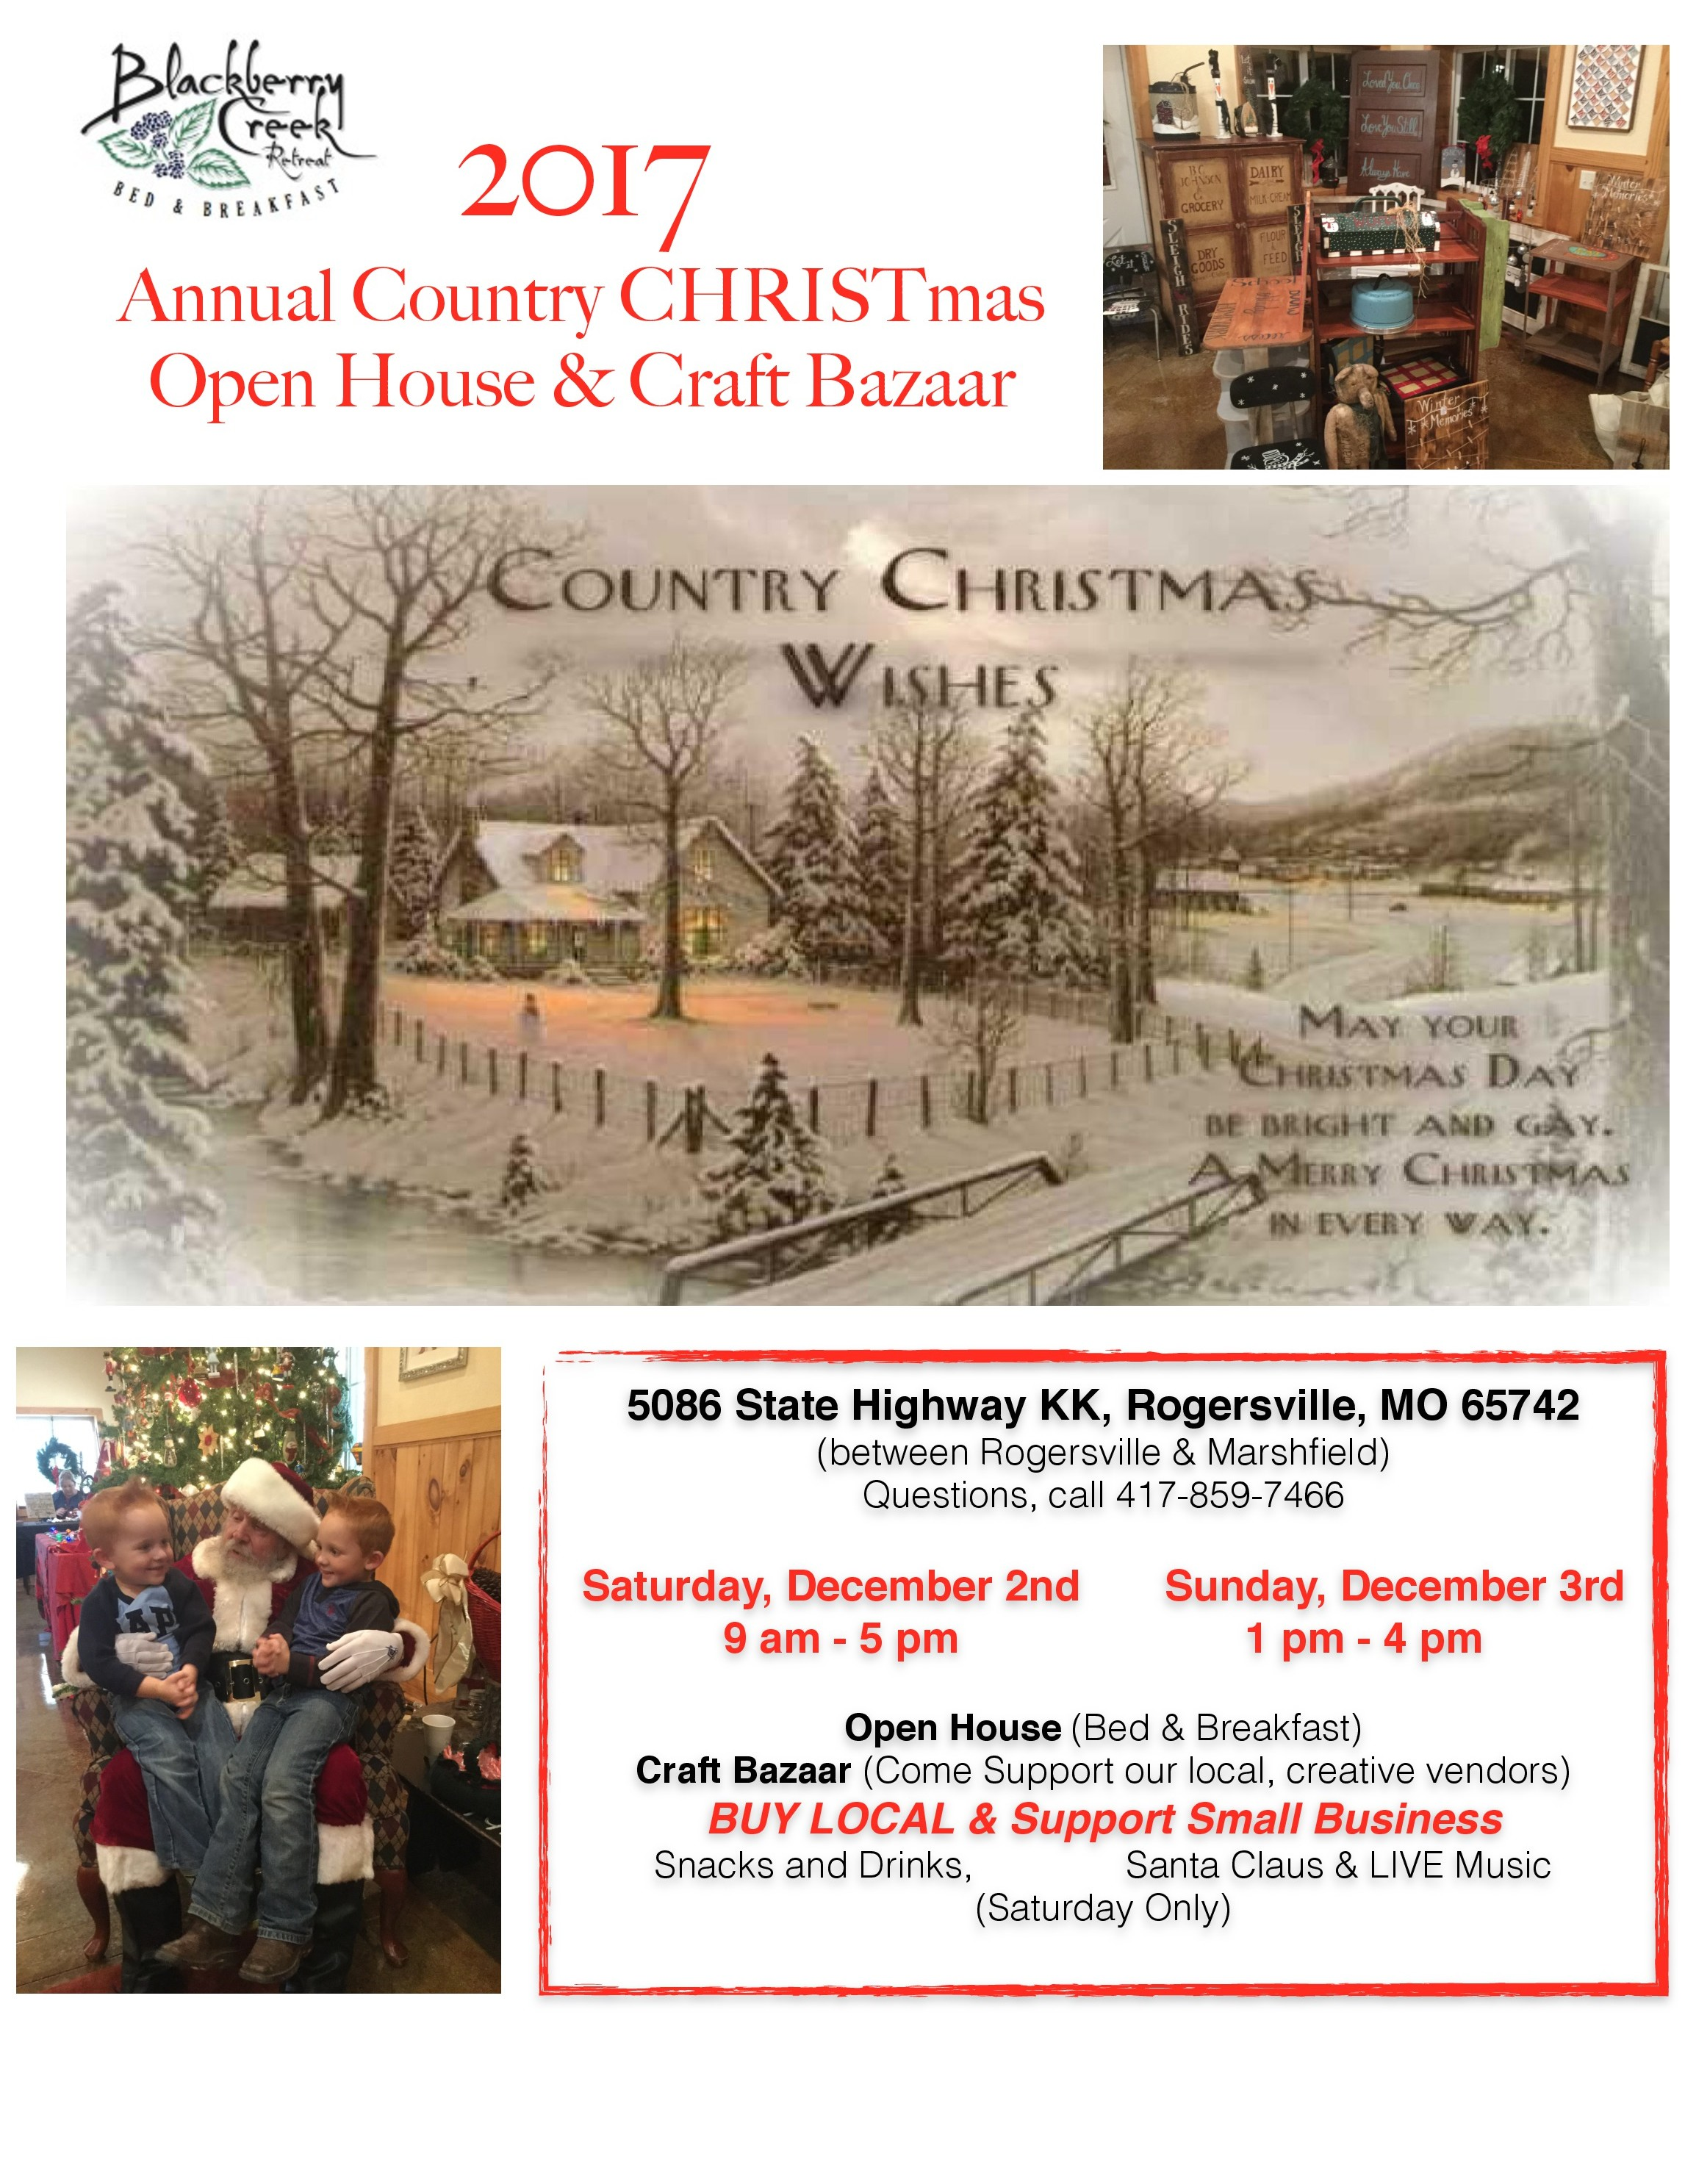 Country Christmas Open House / Craft Bazaar